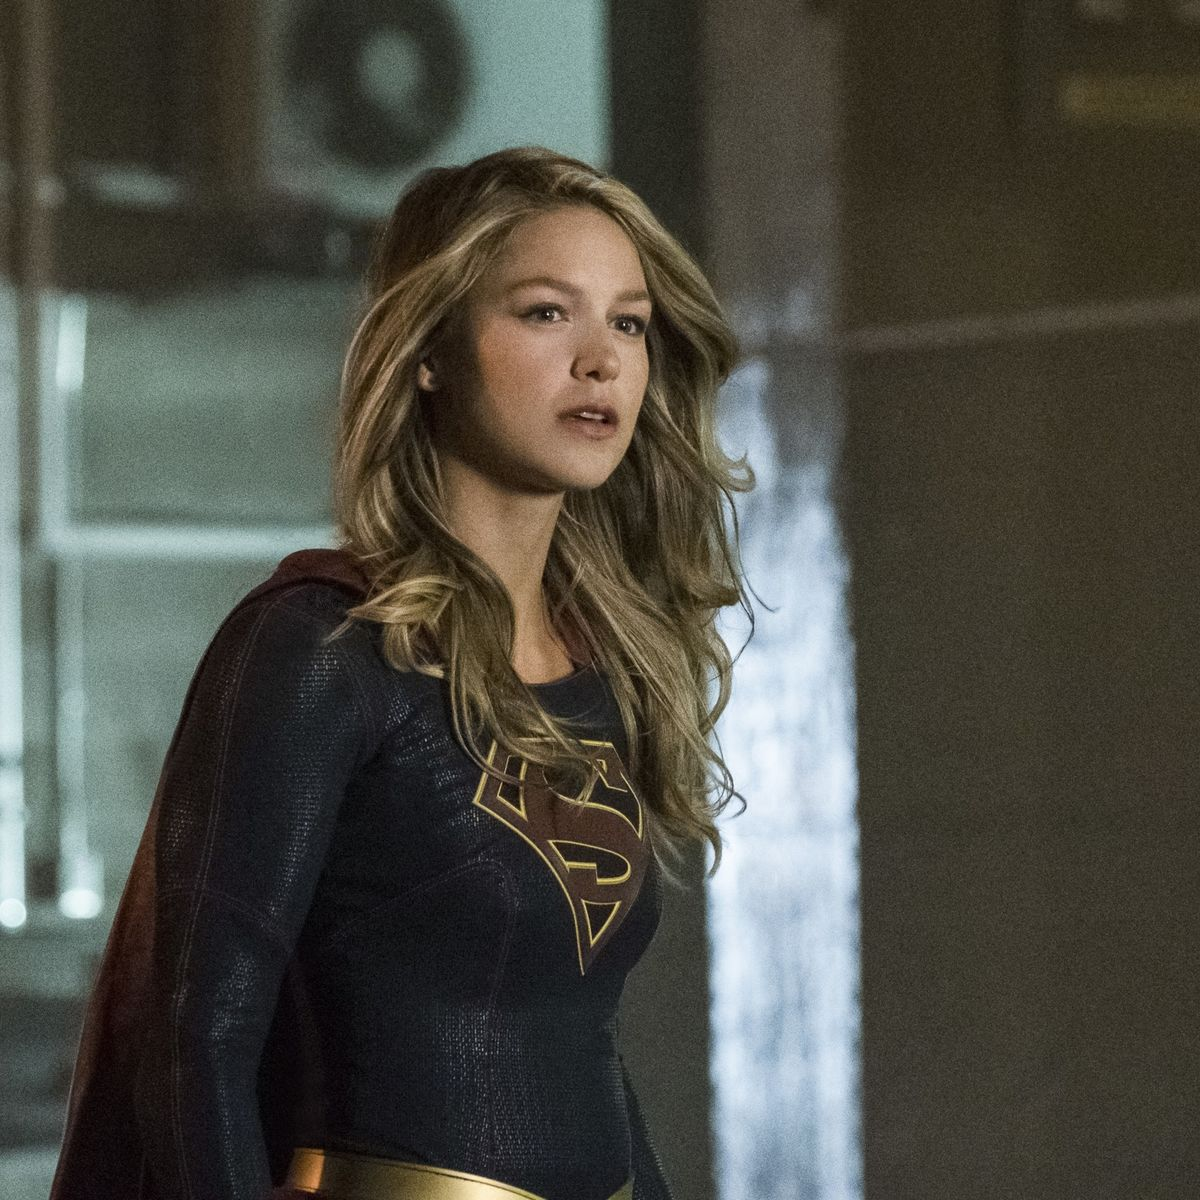 Supergirl to feature TV's first transgender superhero